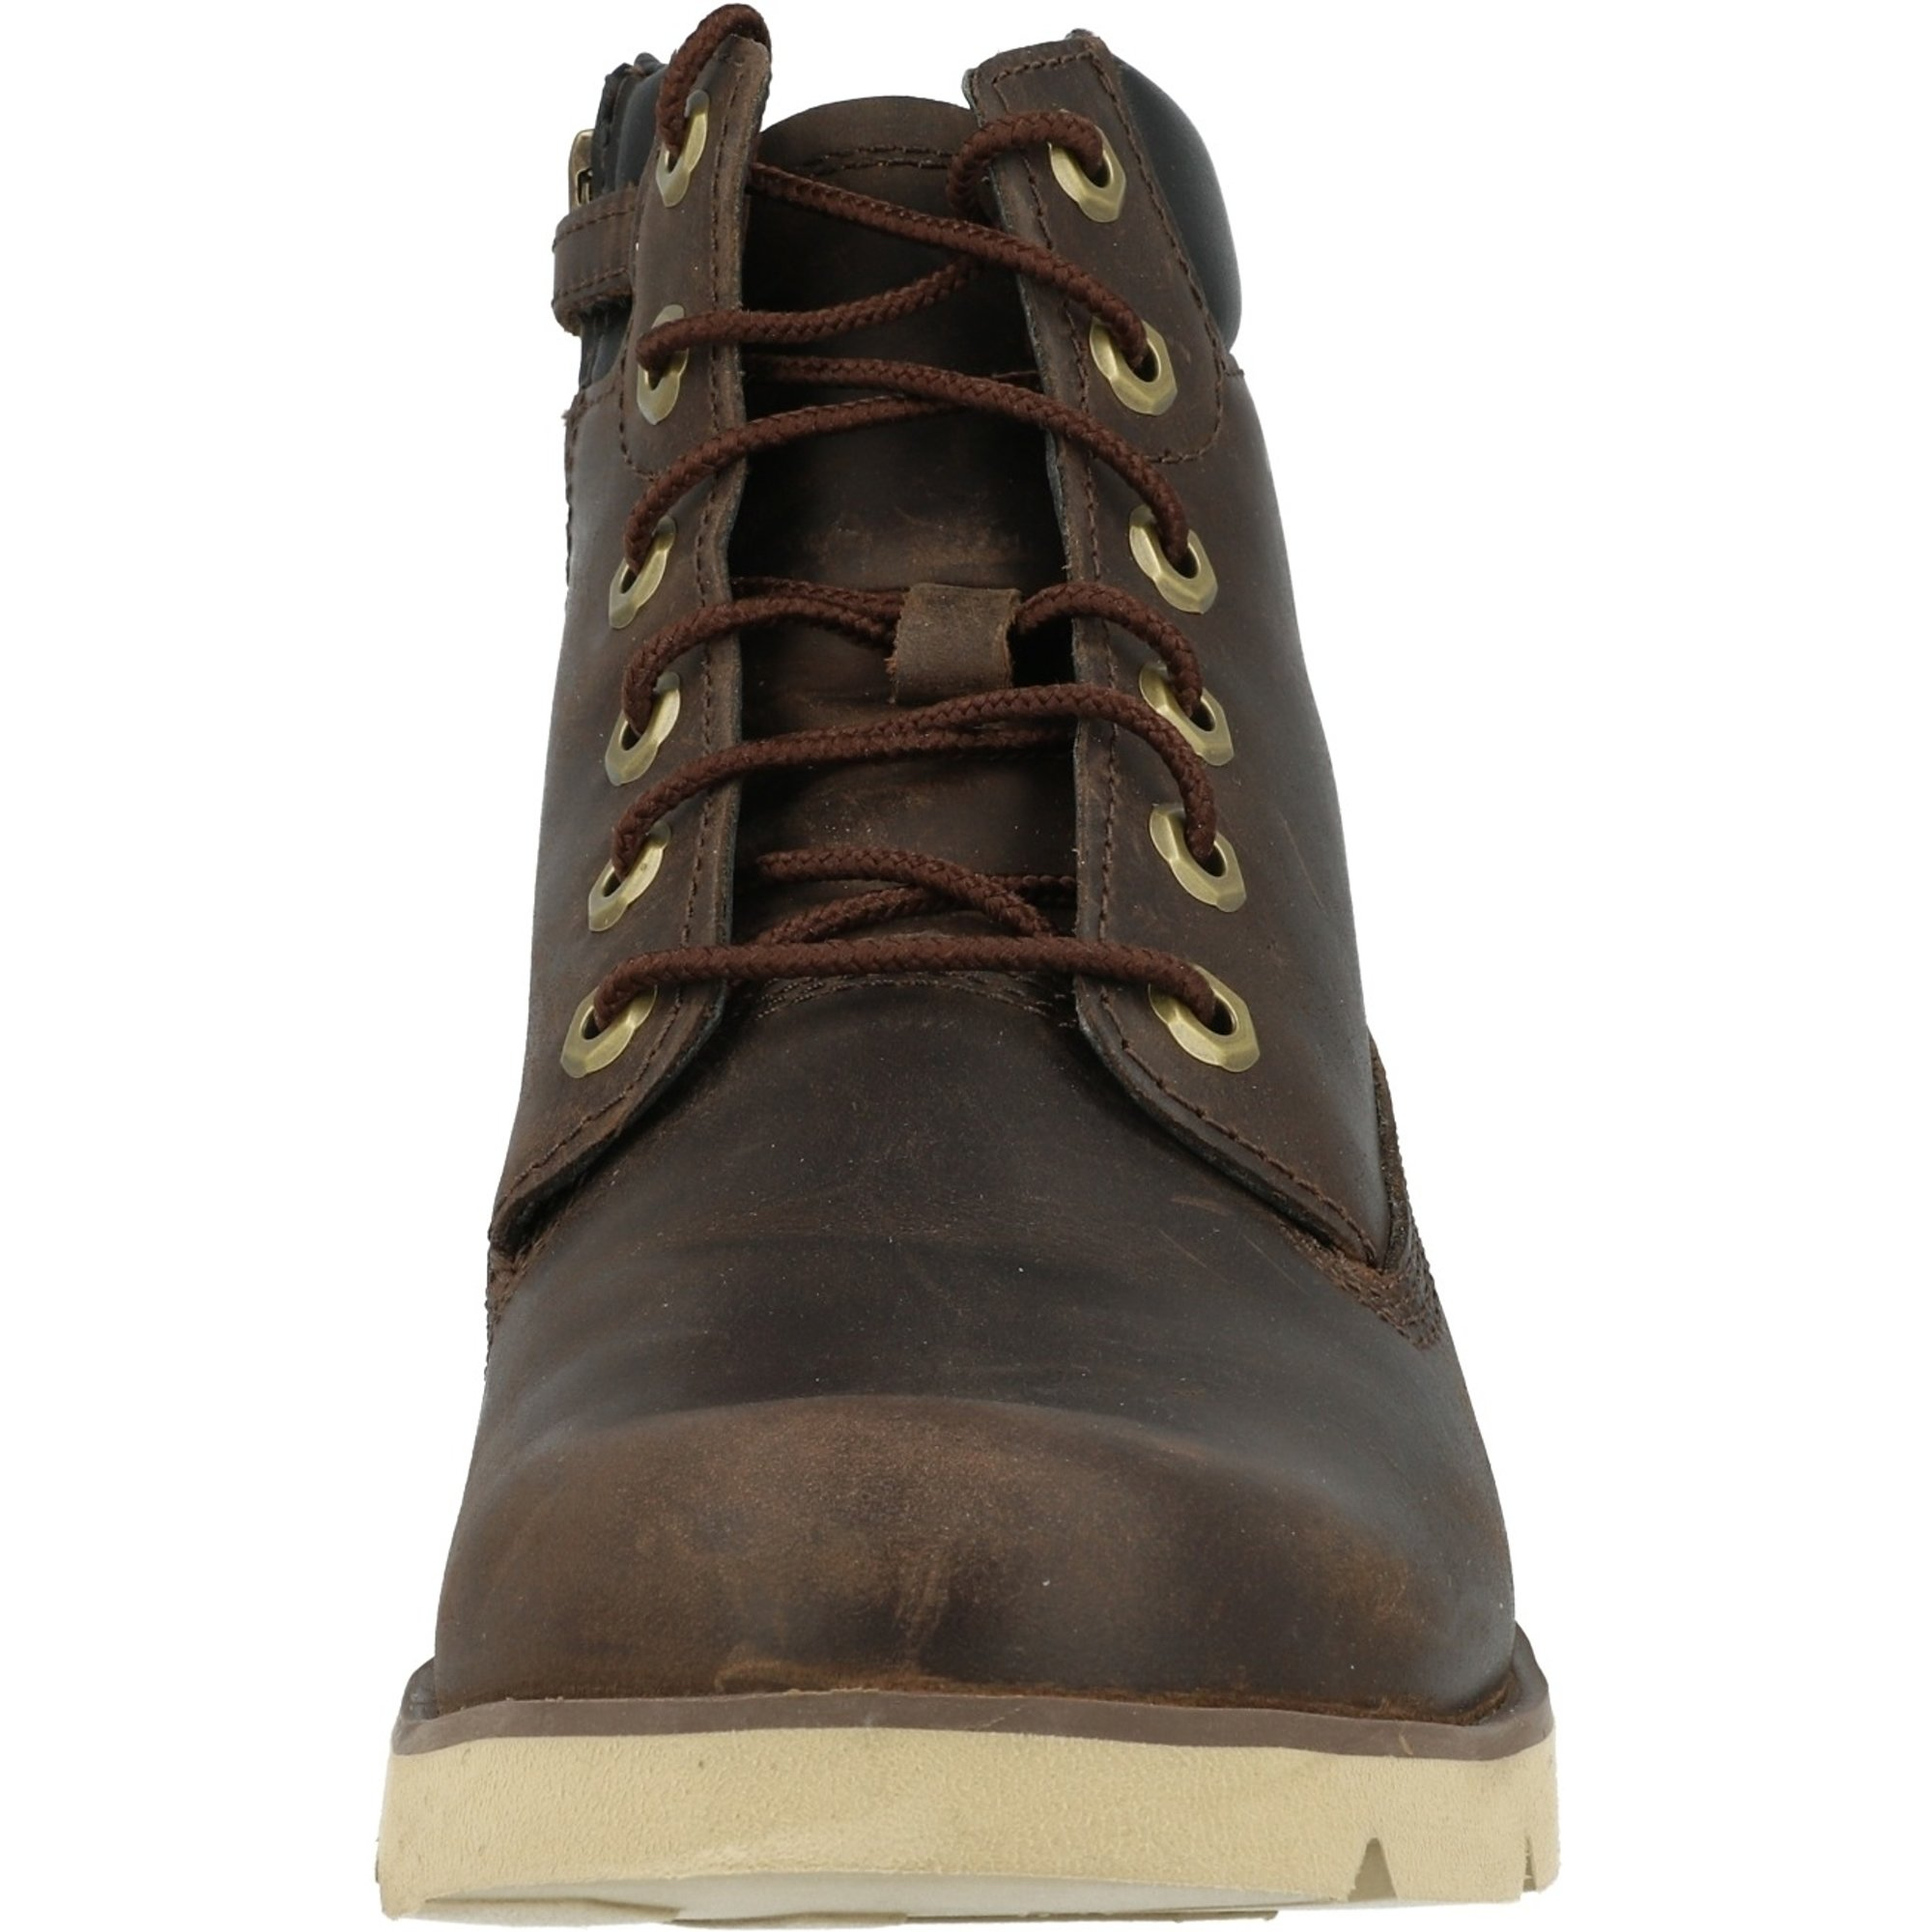 Timberland Radford 6 Inch Boot J Medium Brown Full Grain Leather Junior Ankle Boots